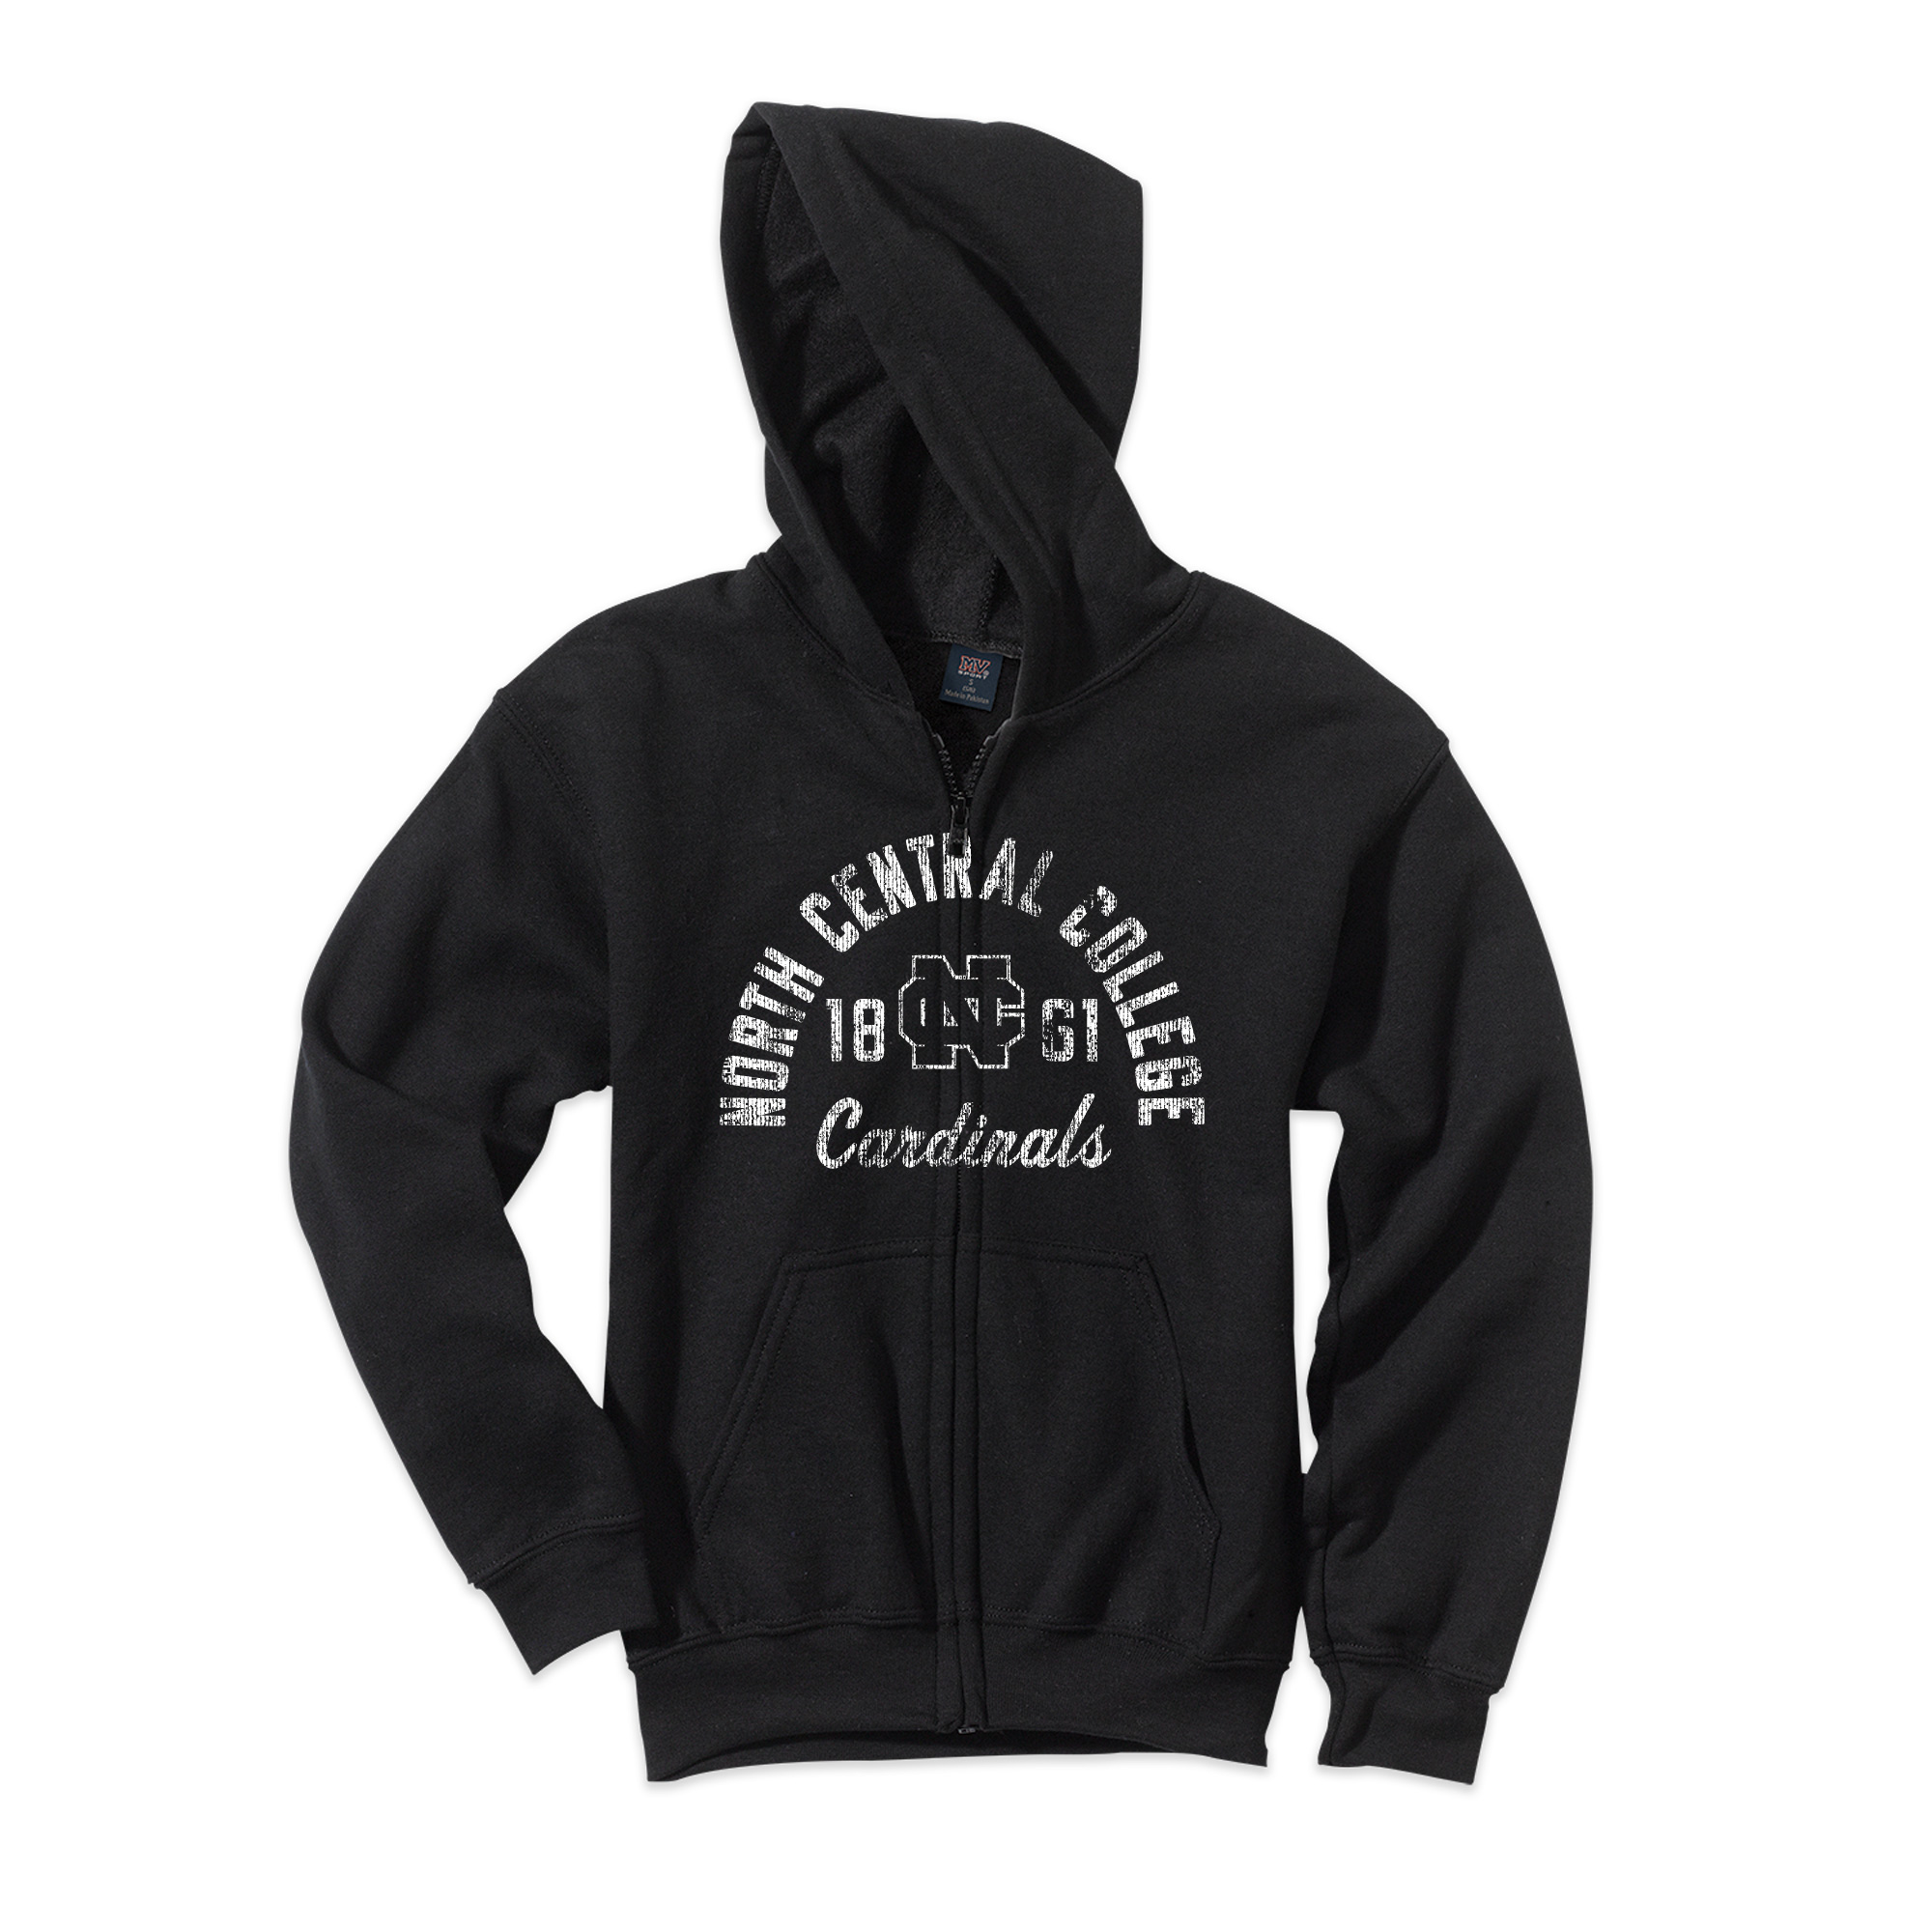 Alternative Image for the Youth Full Zip Hoodie Sweatshirt product